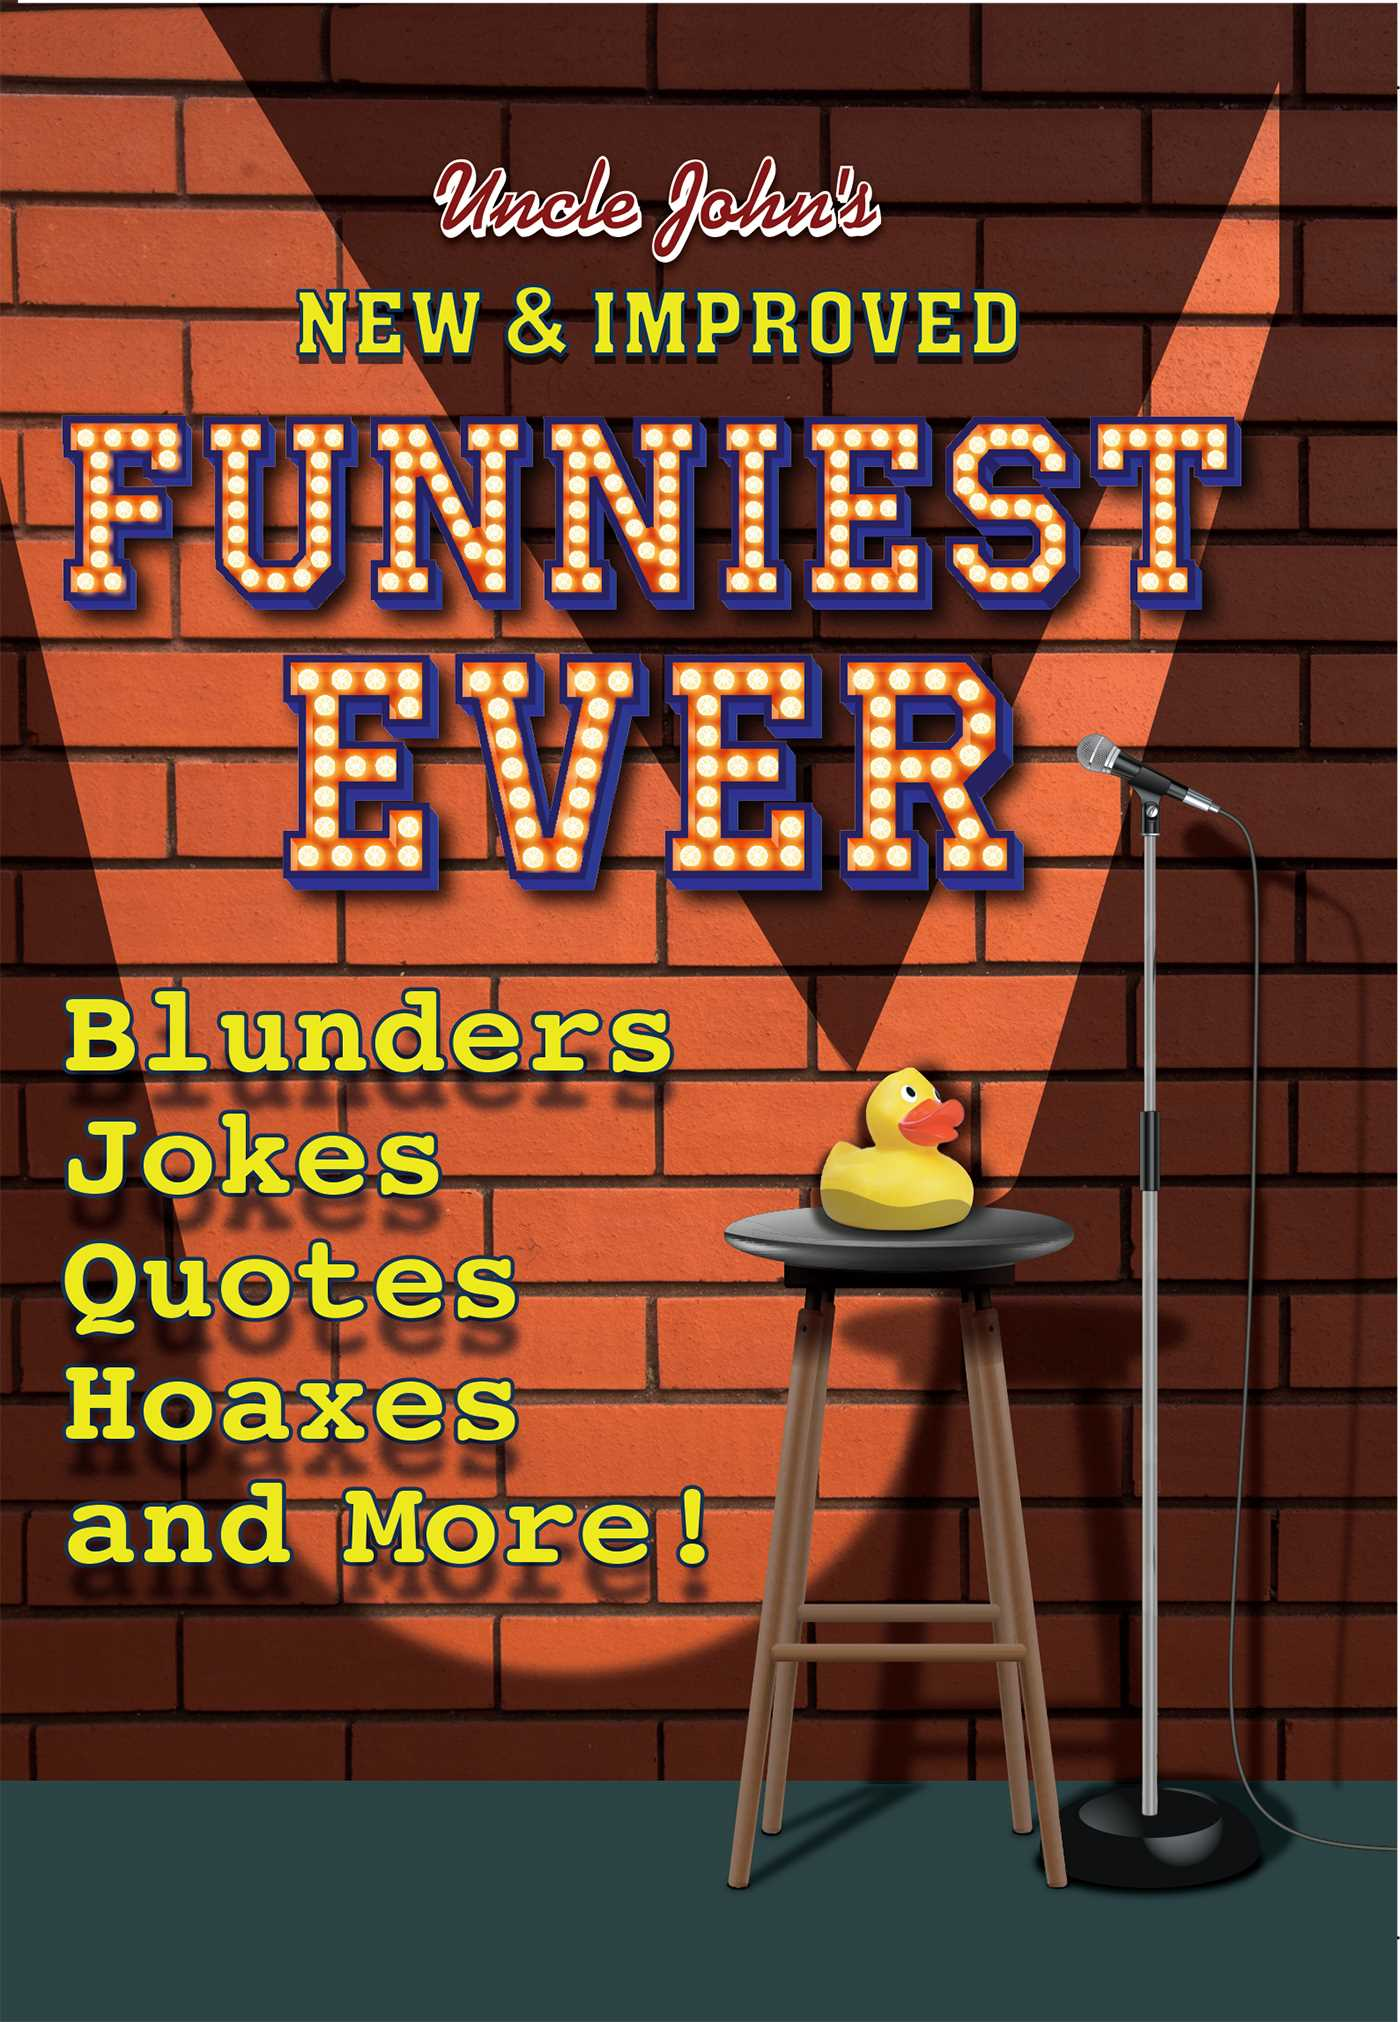 Uncle johns new improved funniest ever 9781684123926 hr